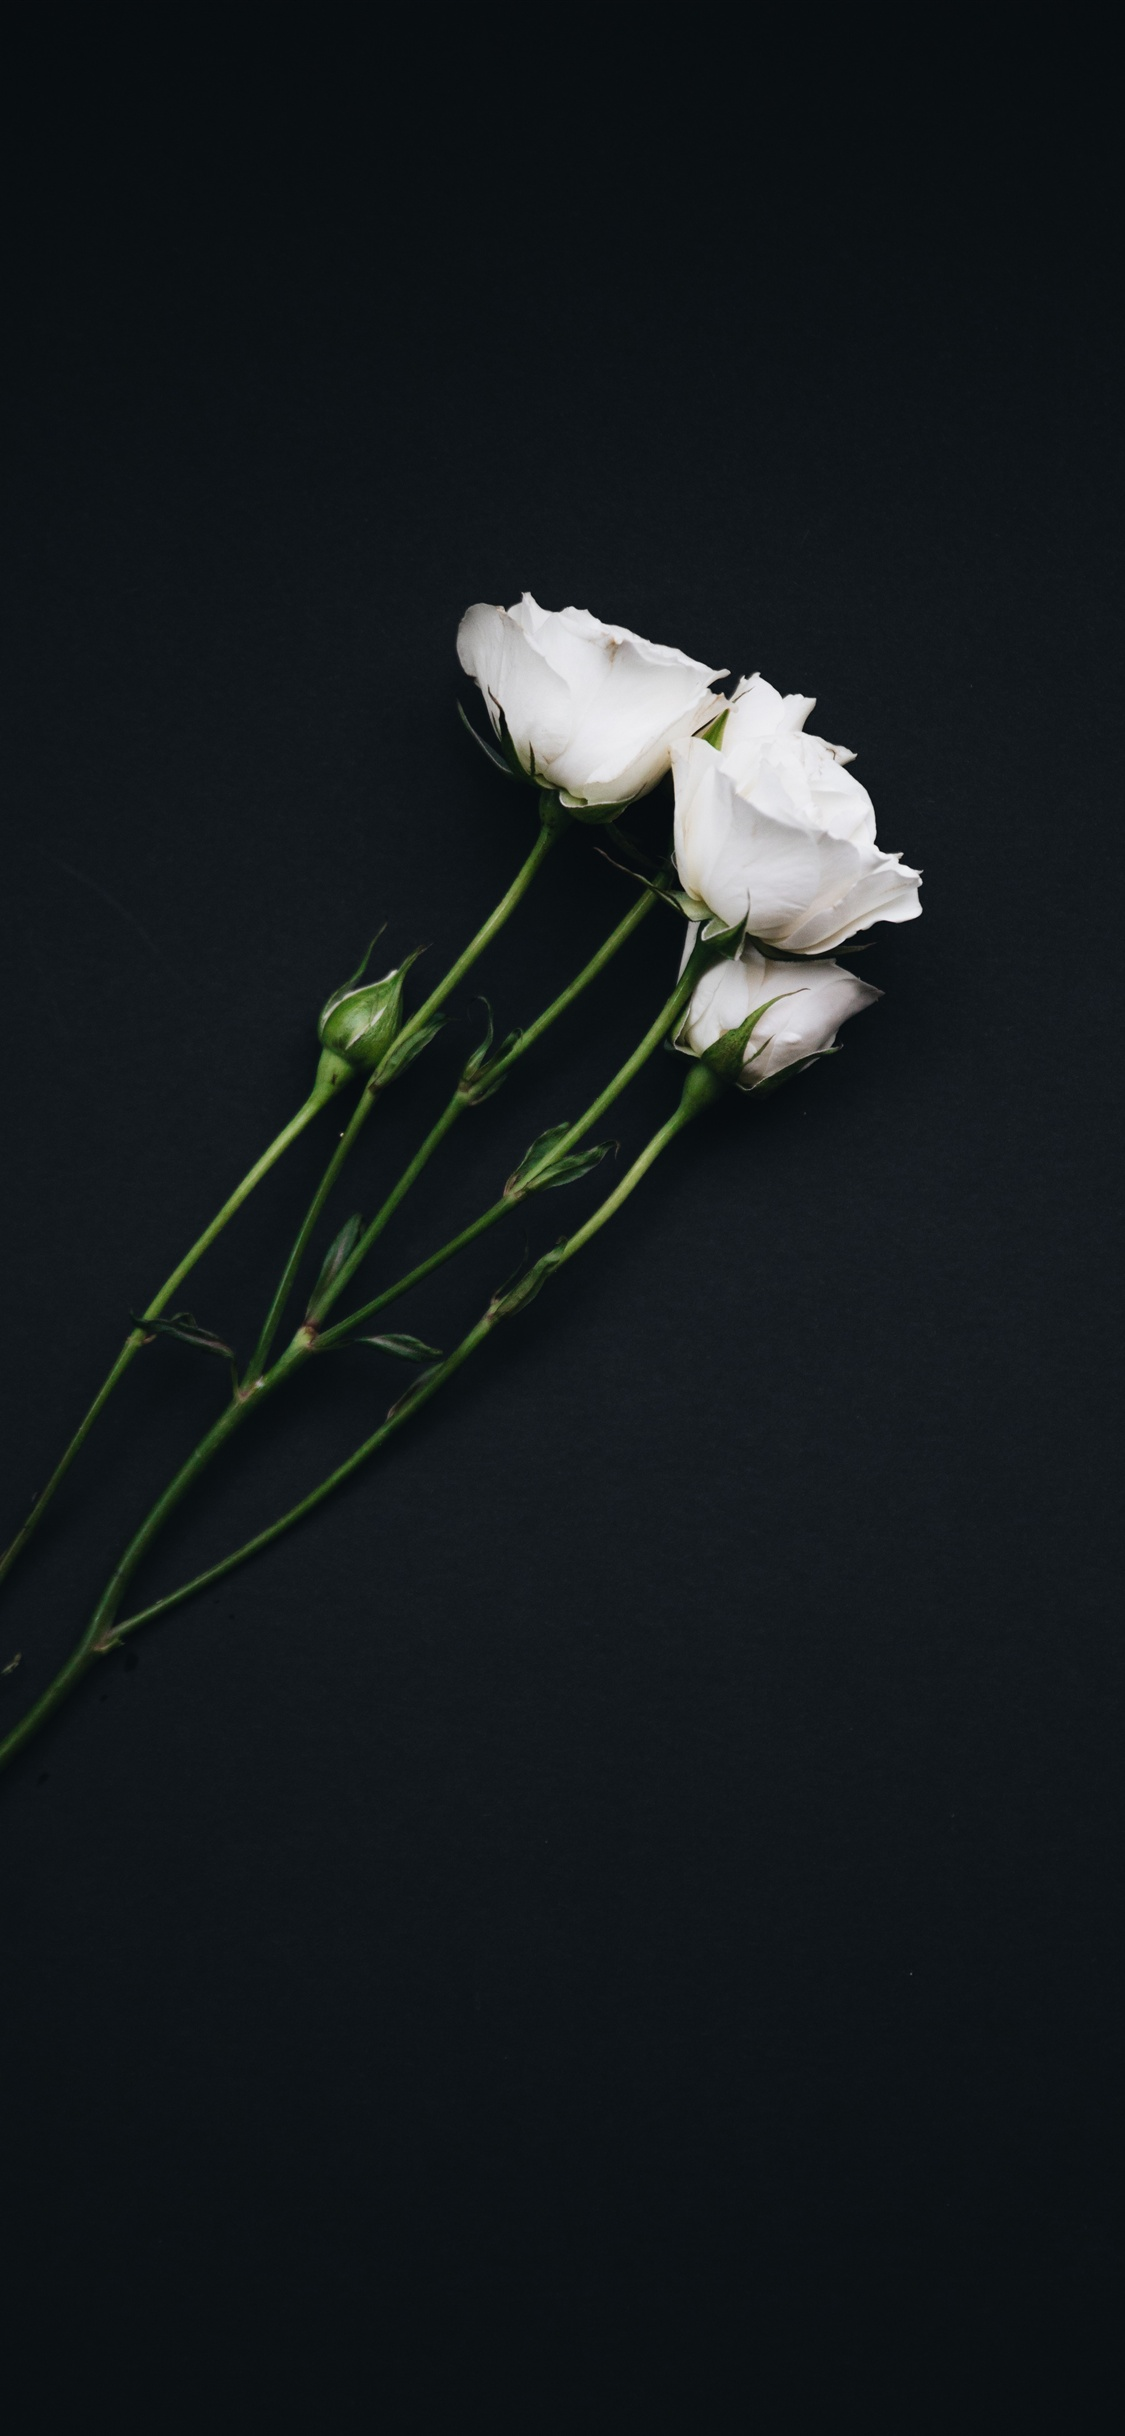 White Roses Black Background Iphone Xs Max X 8 7 6 5 4 3gs Wallpaper Download Iwall365 Com